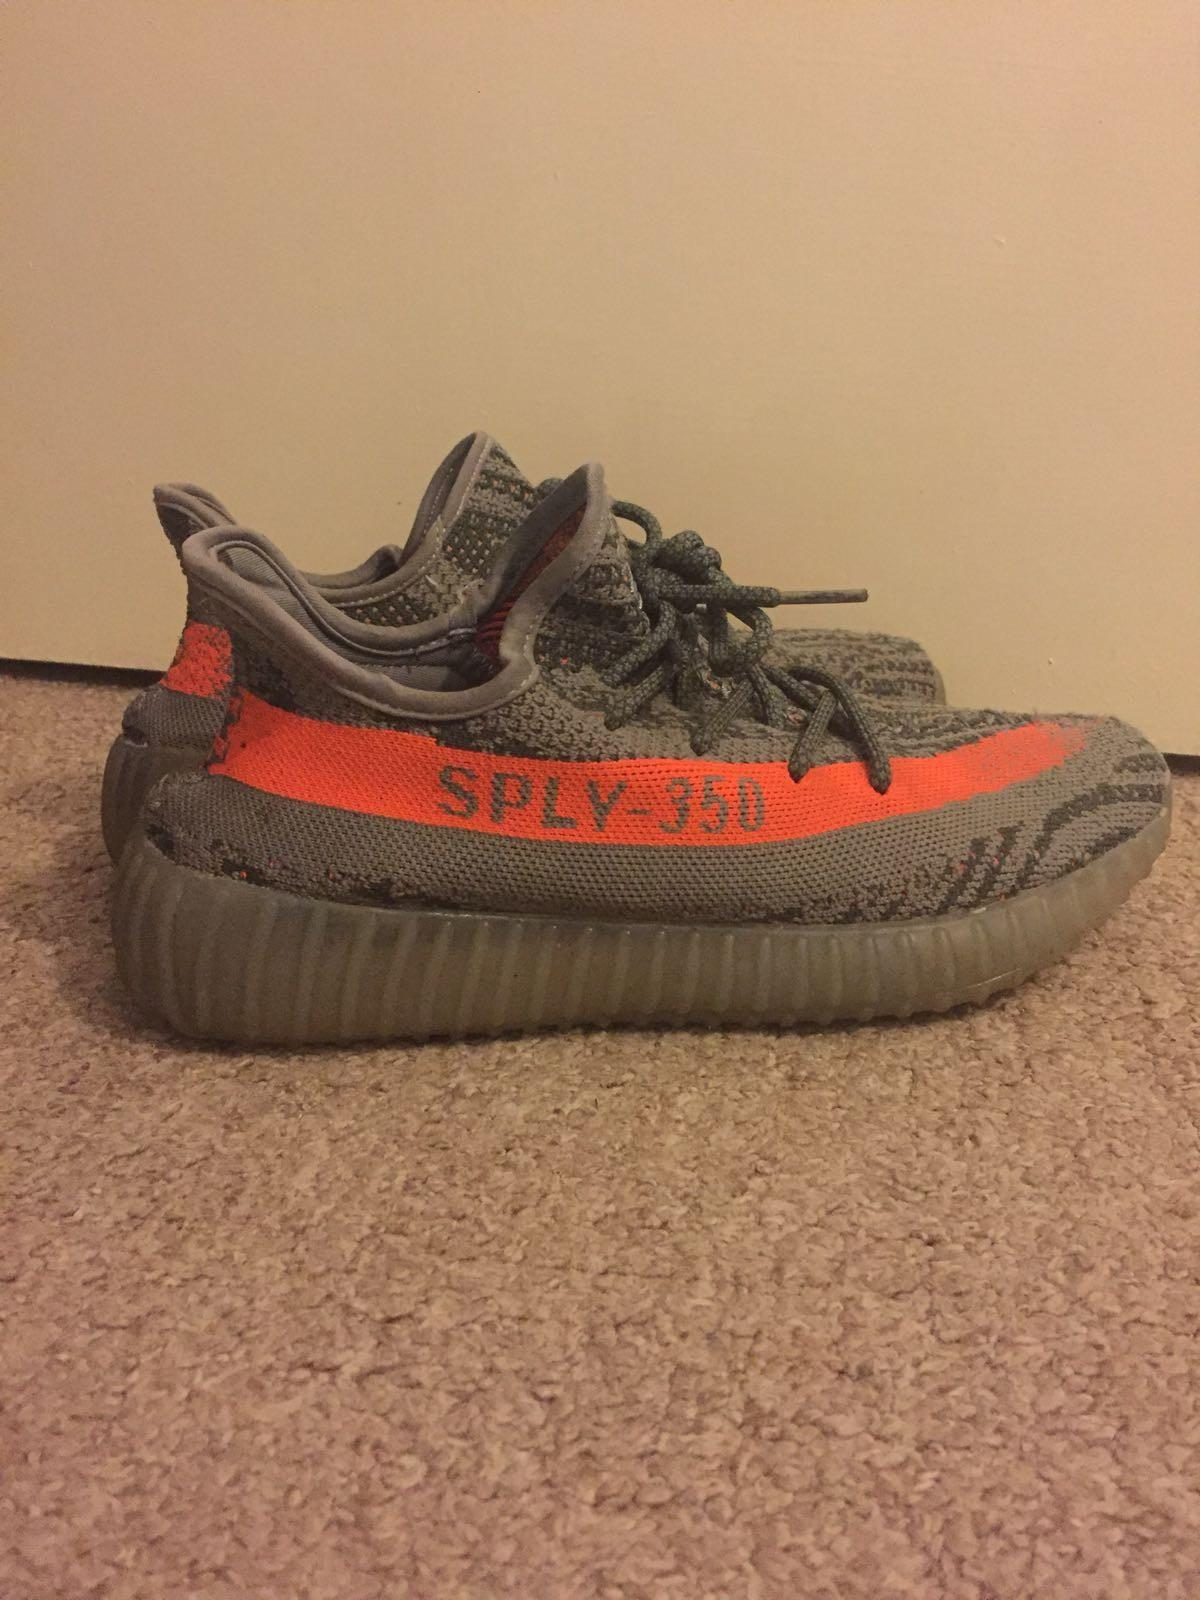 info for 0287f 1b57c Yeezy sply 350 Grey and Orange size 8 in SG1 Stevenage for ...